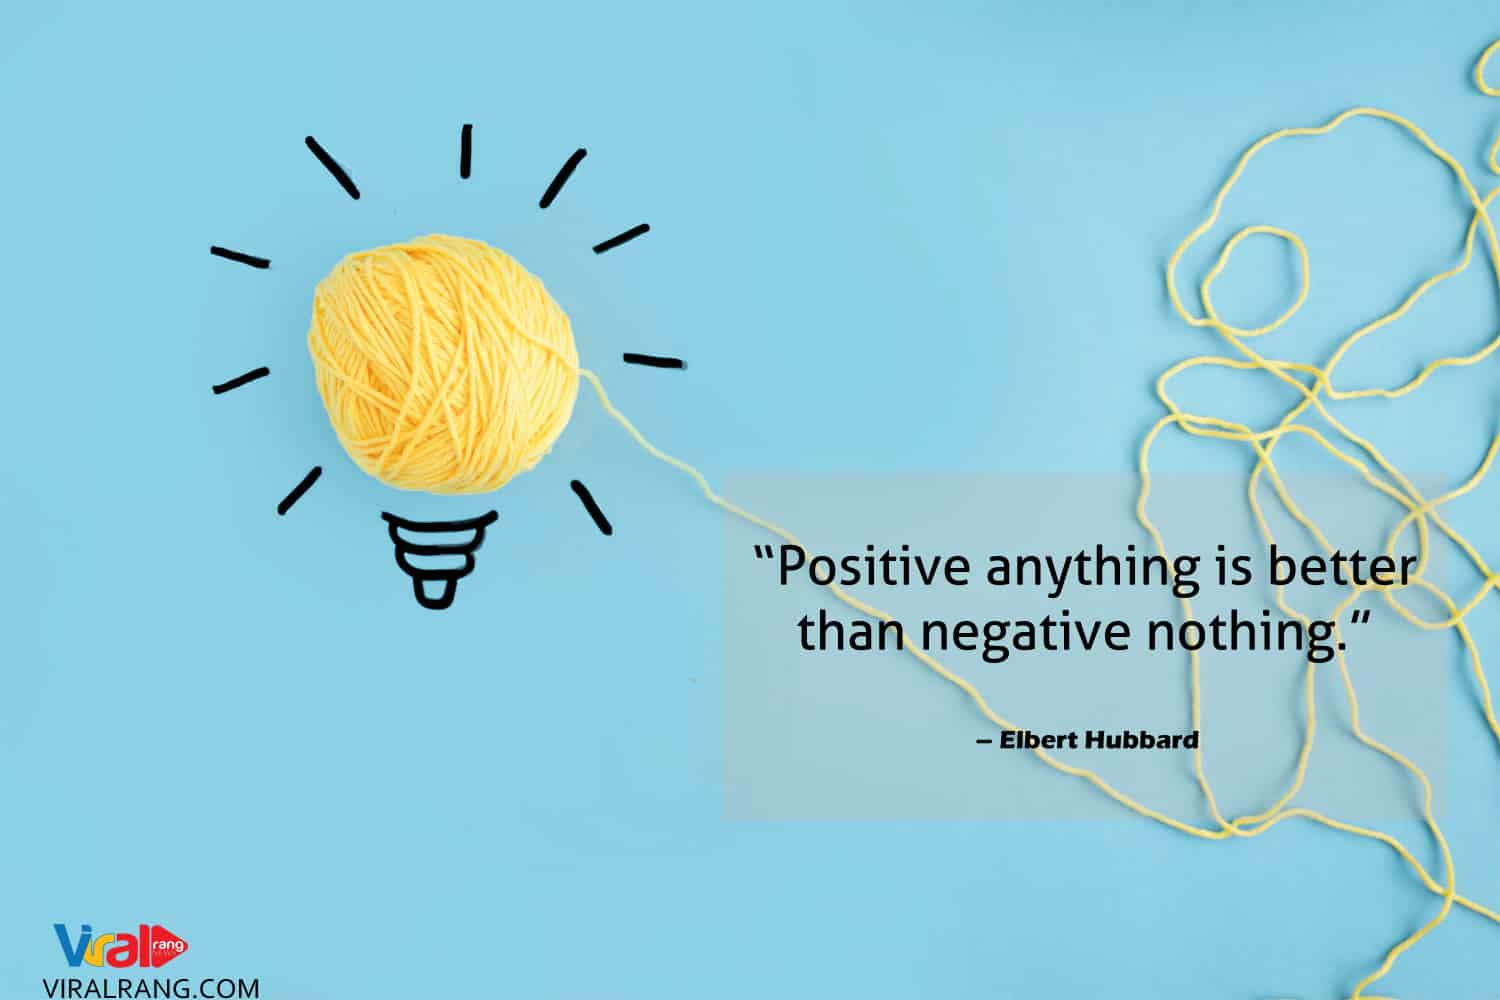 Positive anything is better, positive quotes